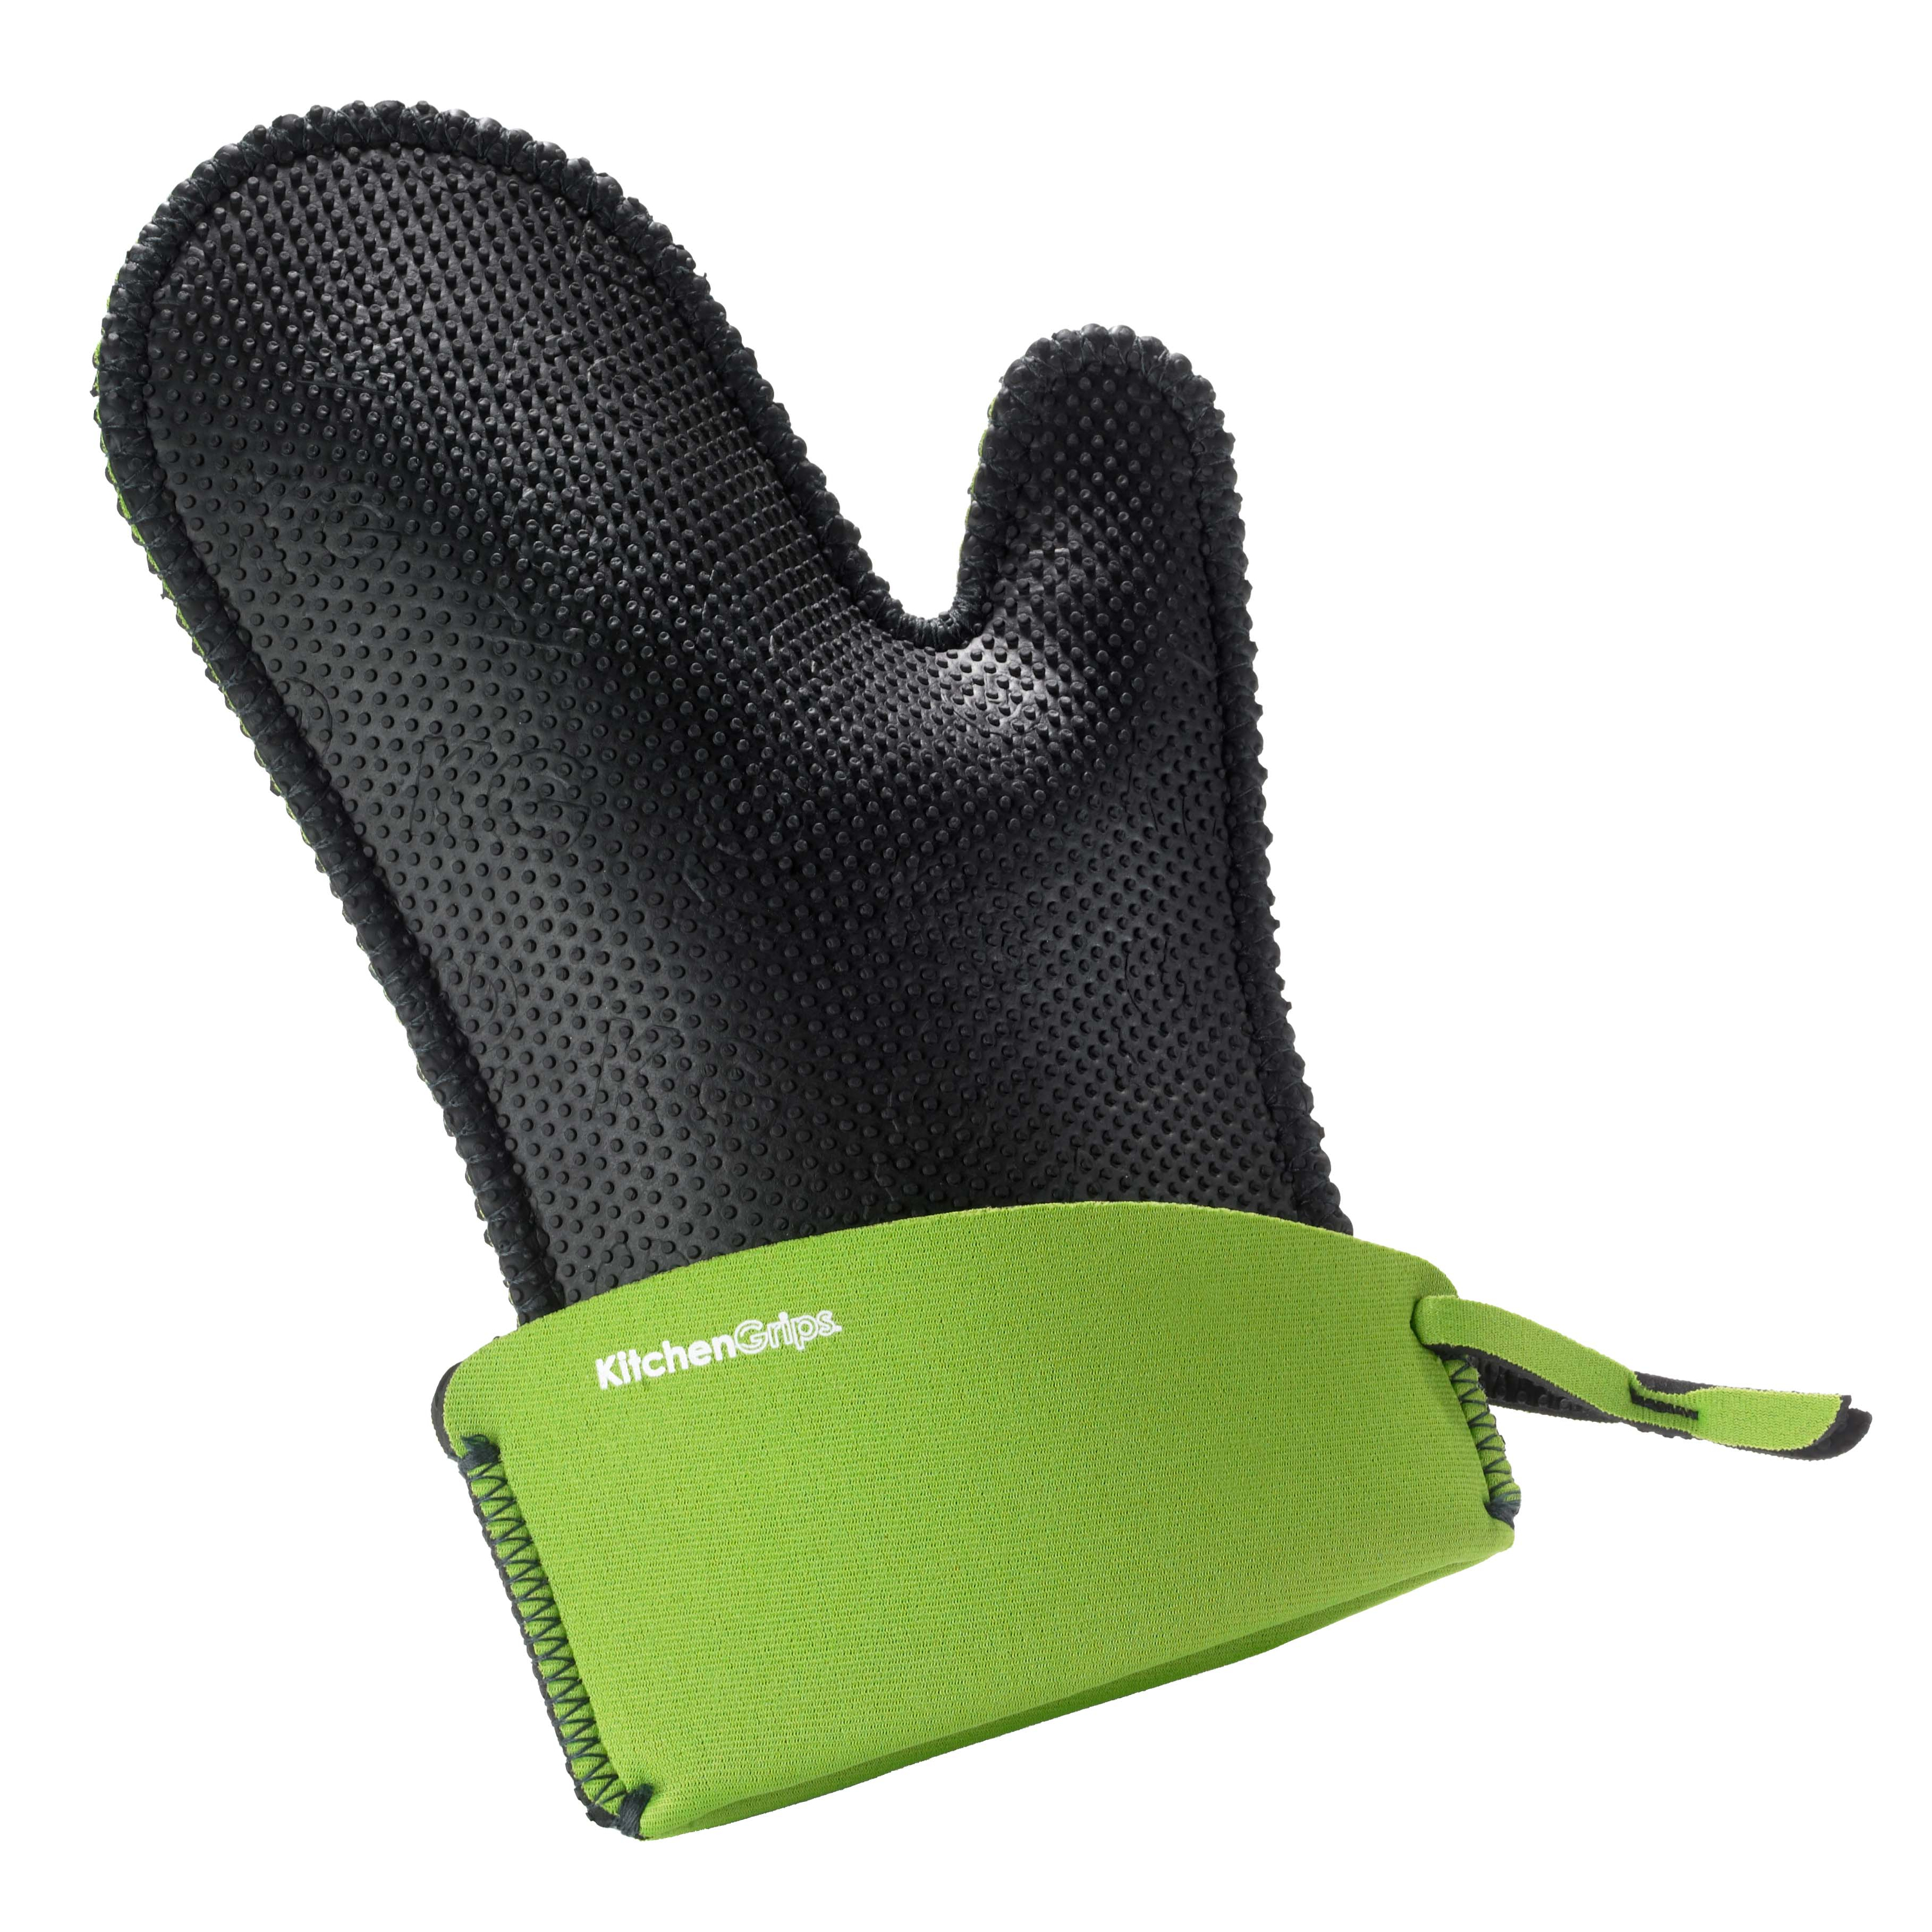 KitchenGrips Small Black Chef's Mitt with Lime Cuff